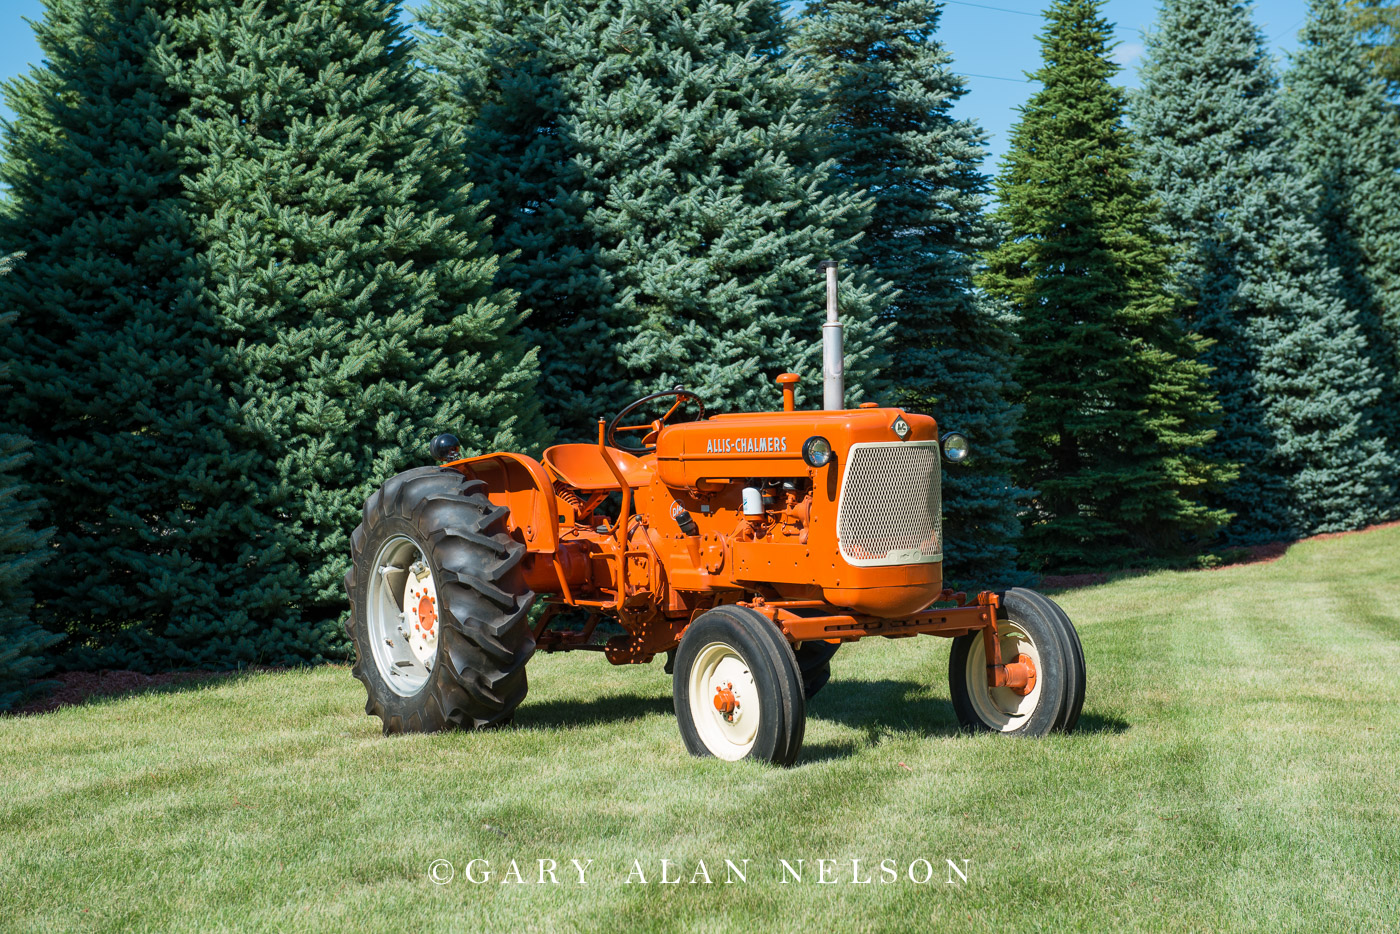 Allis-Chalmers, antique tractor, photo